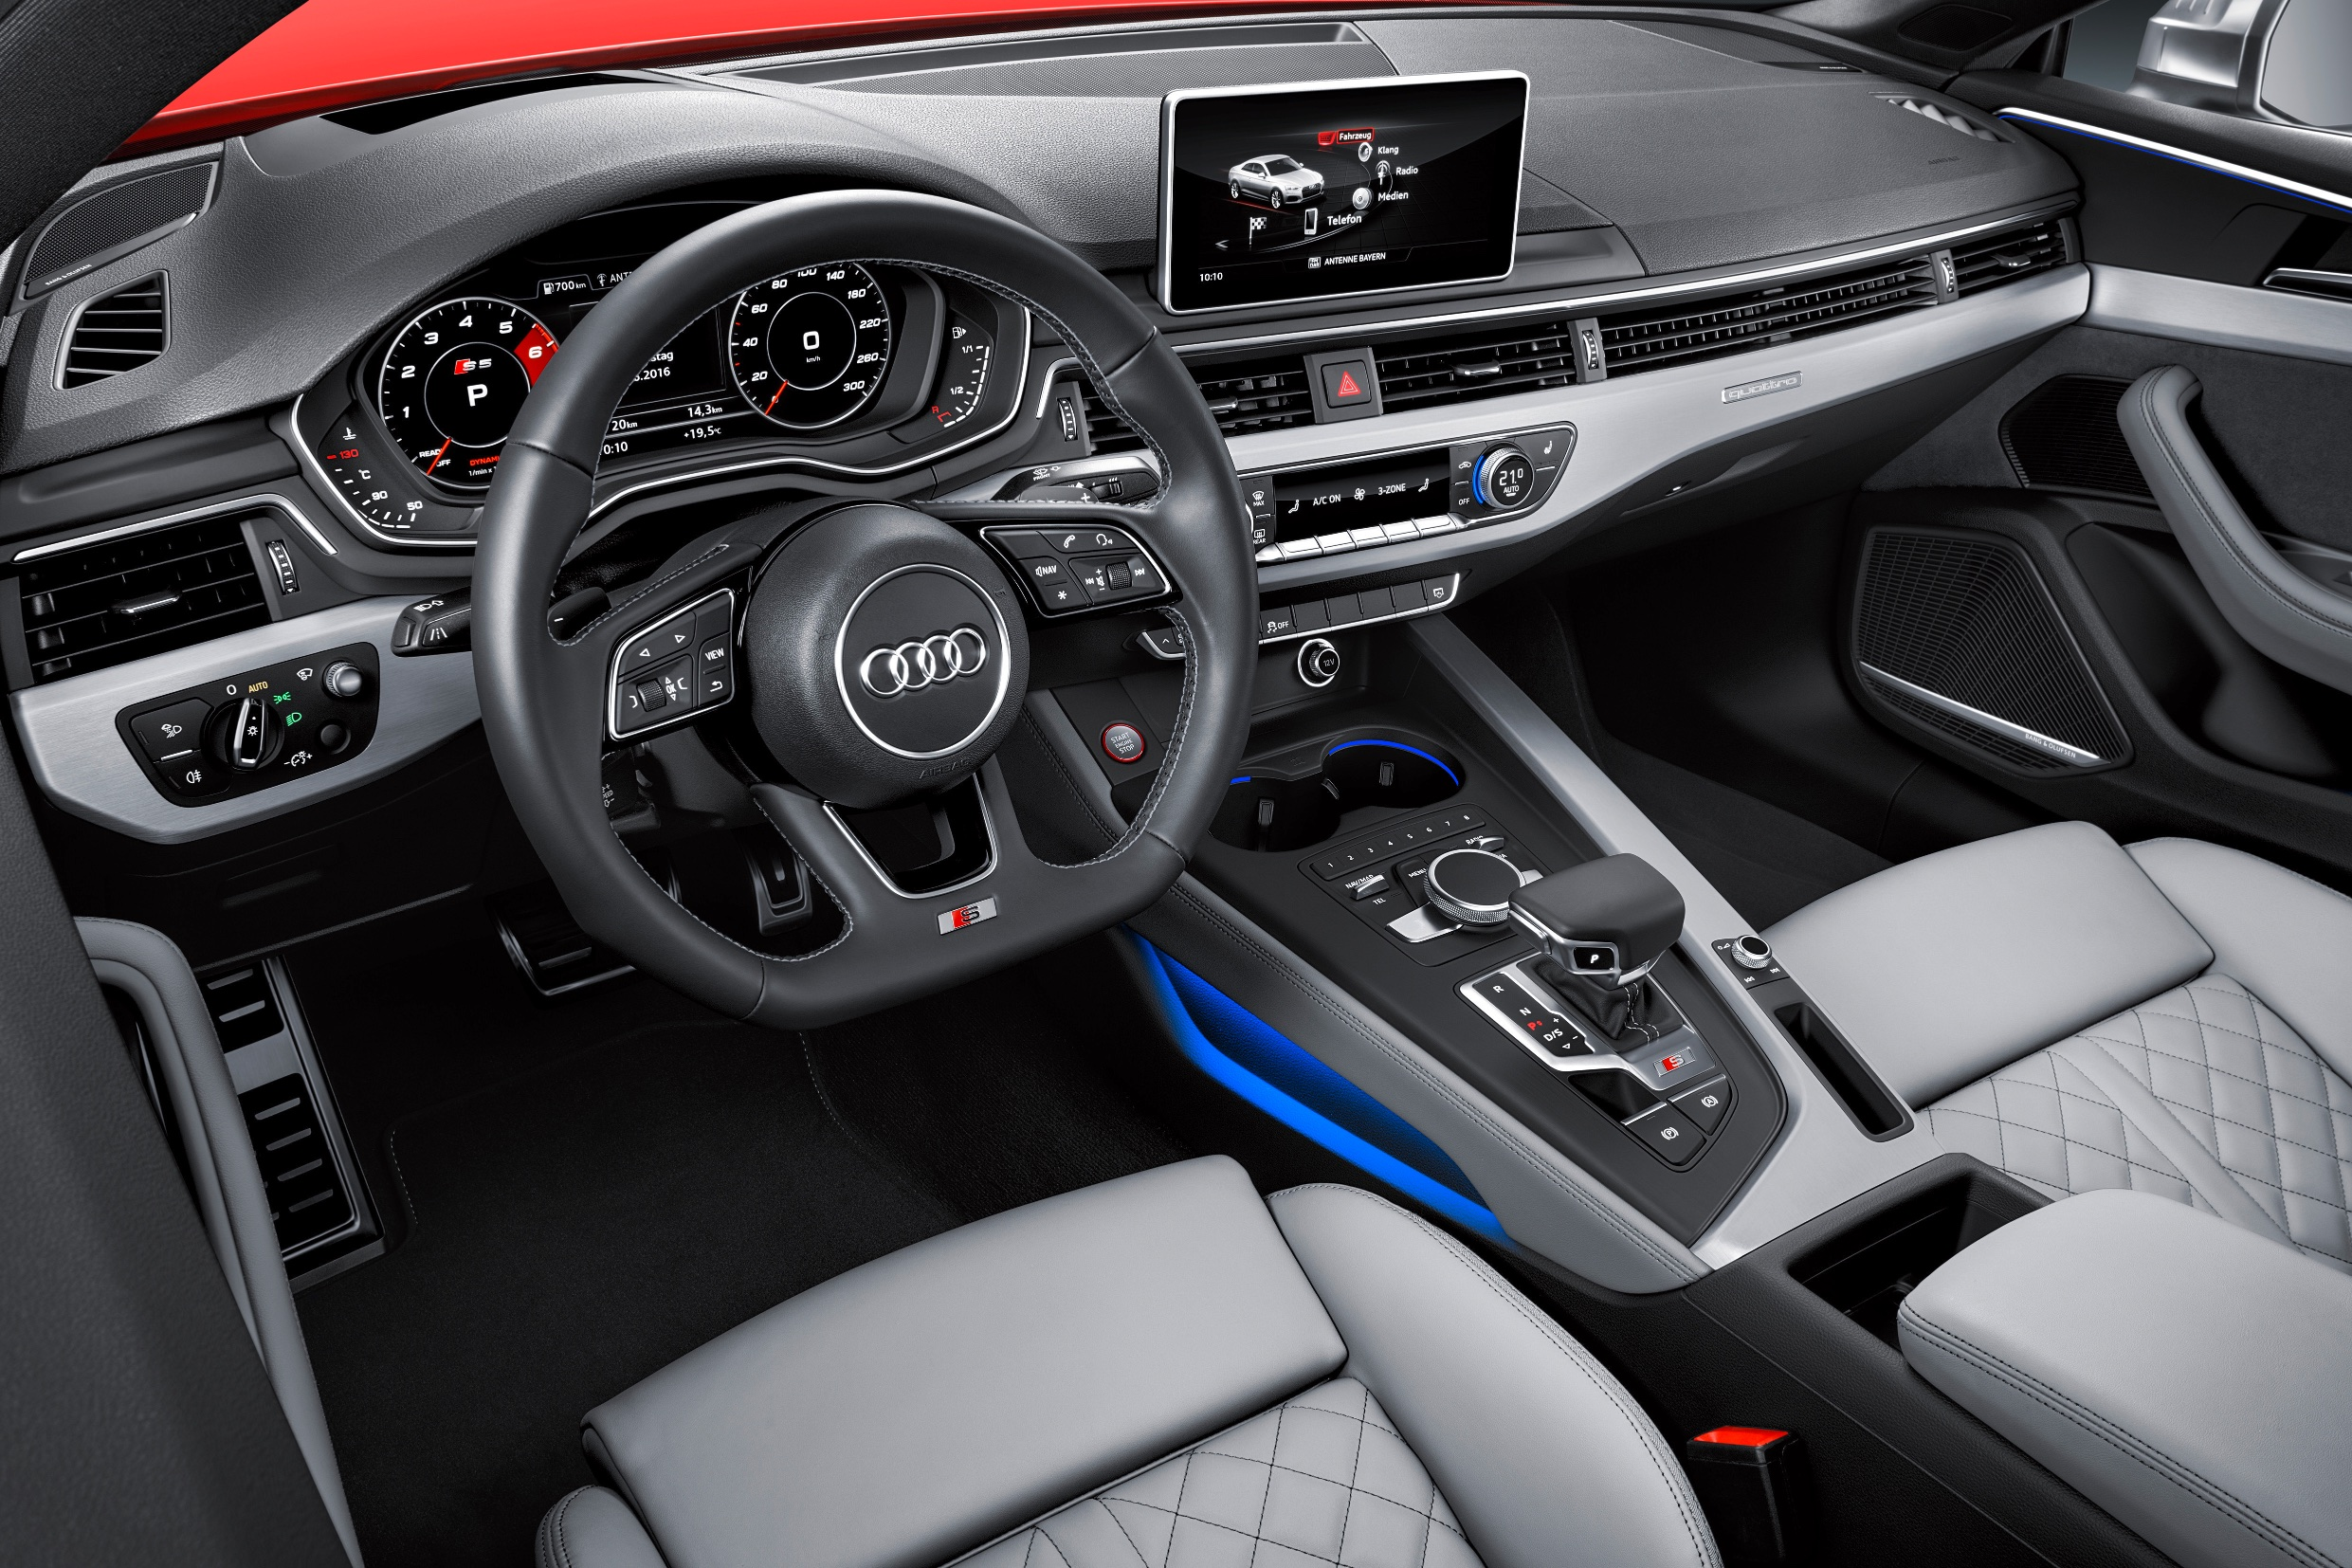 Power in Porto With The New Audi S5 3